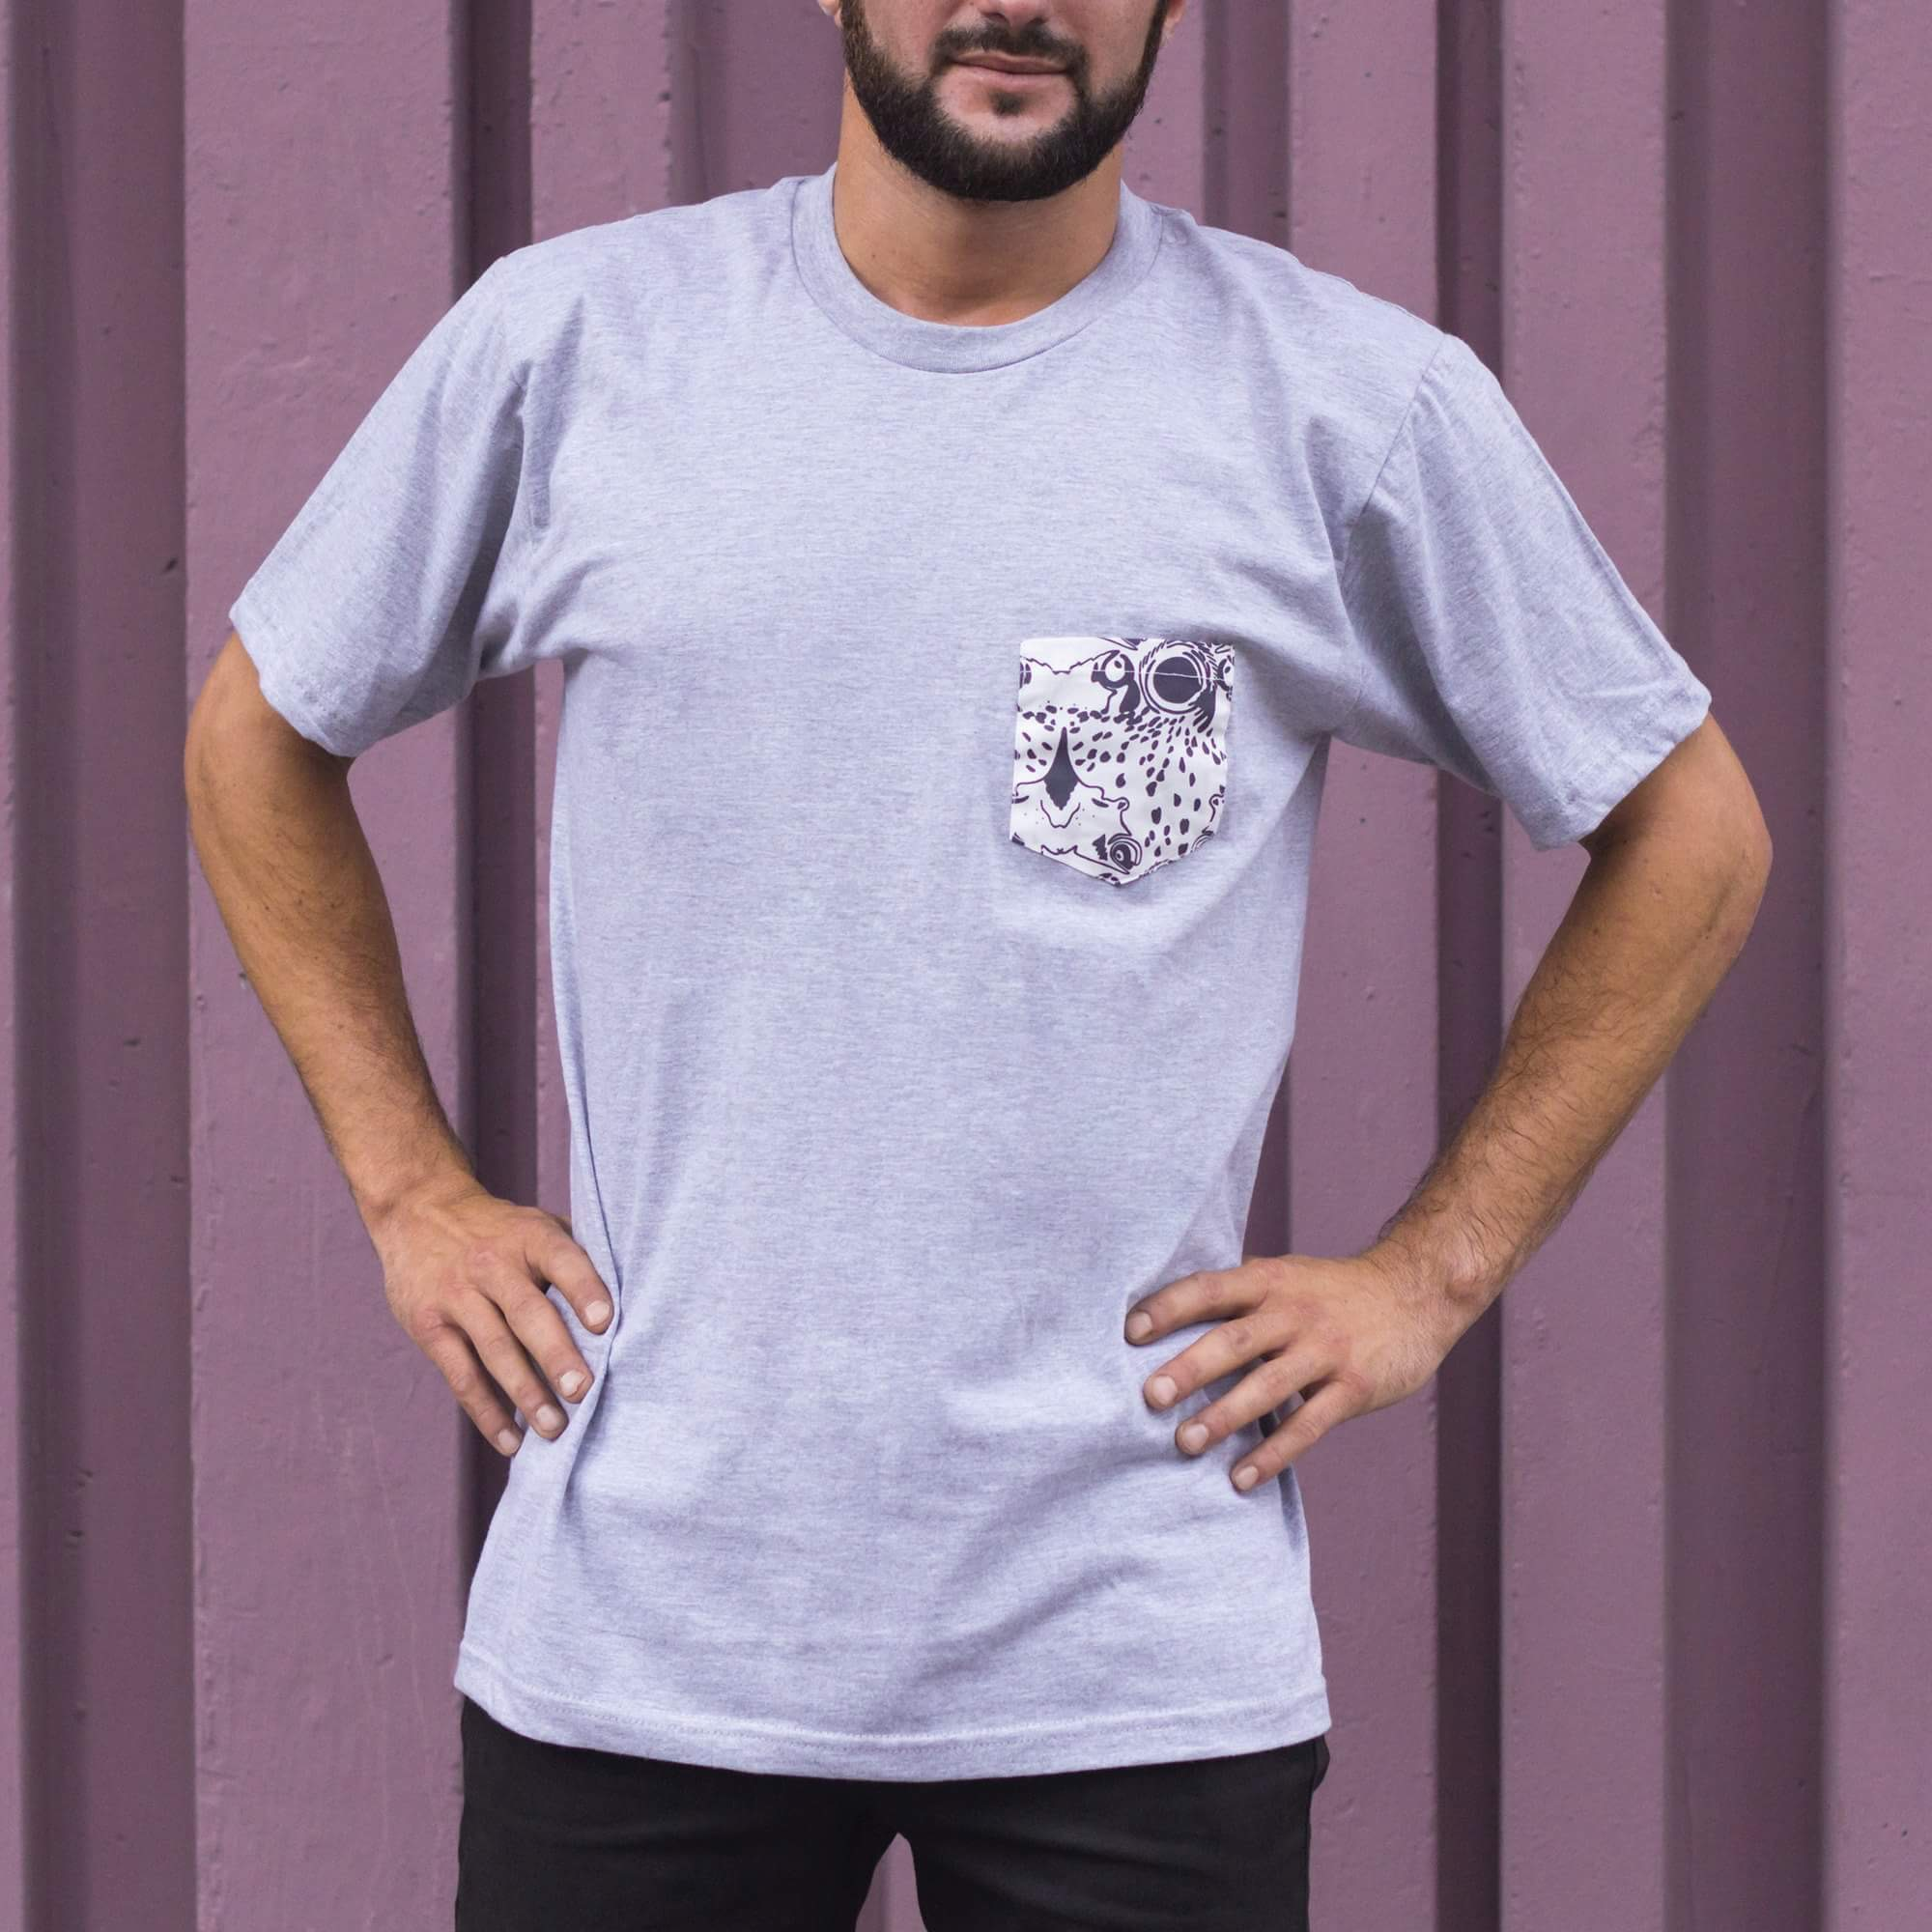 LaureMjoy - T-shirt gris clair